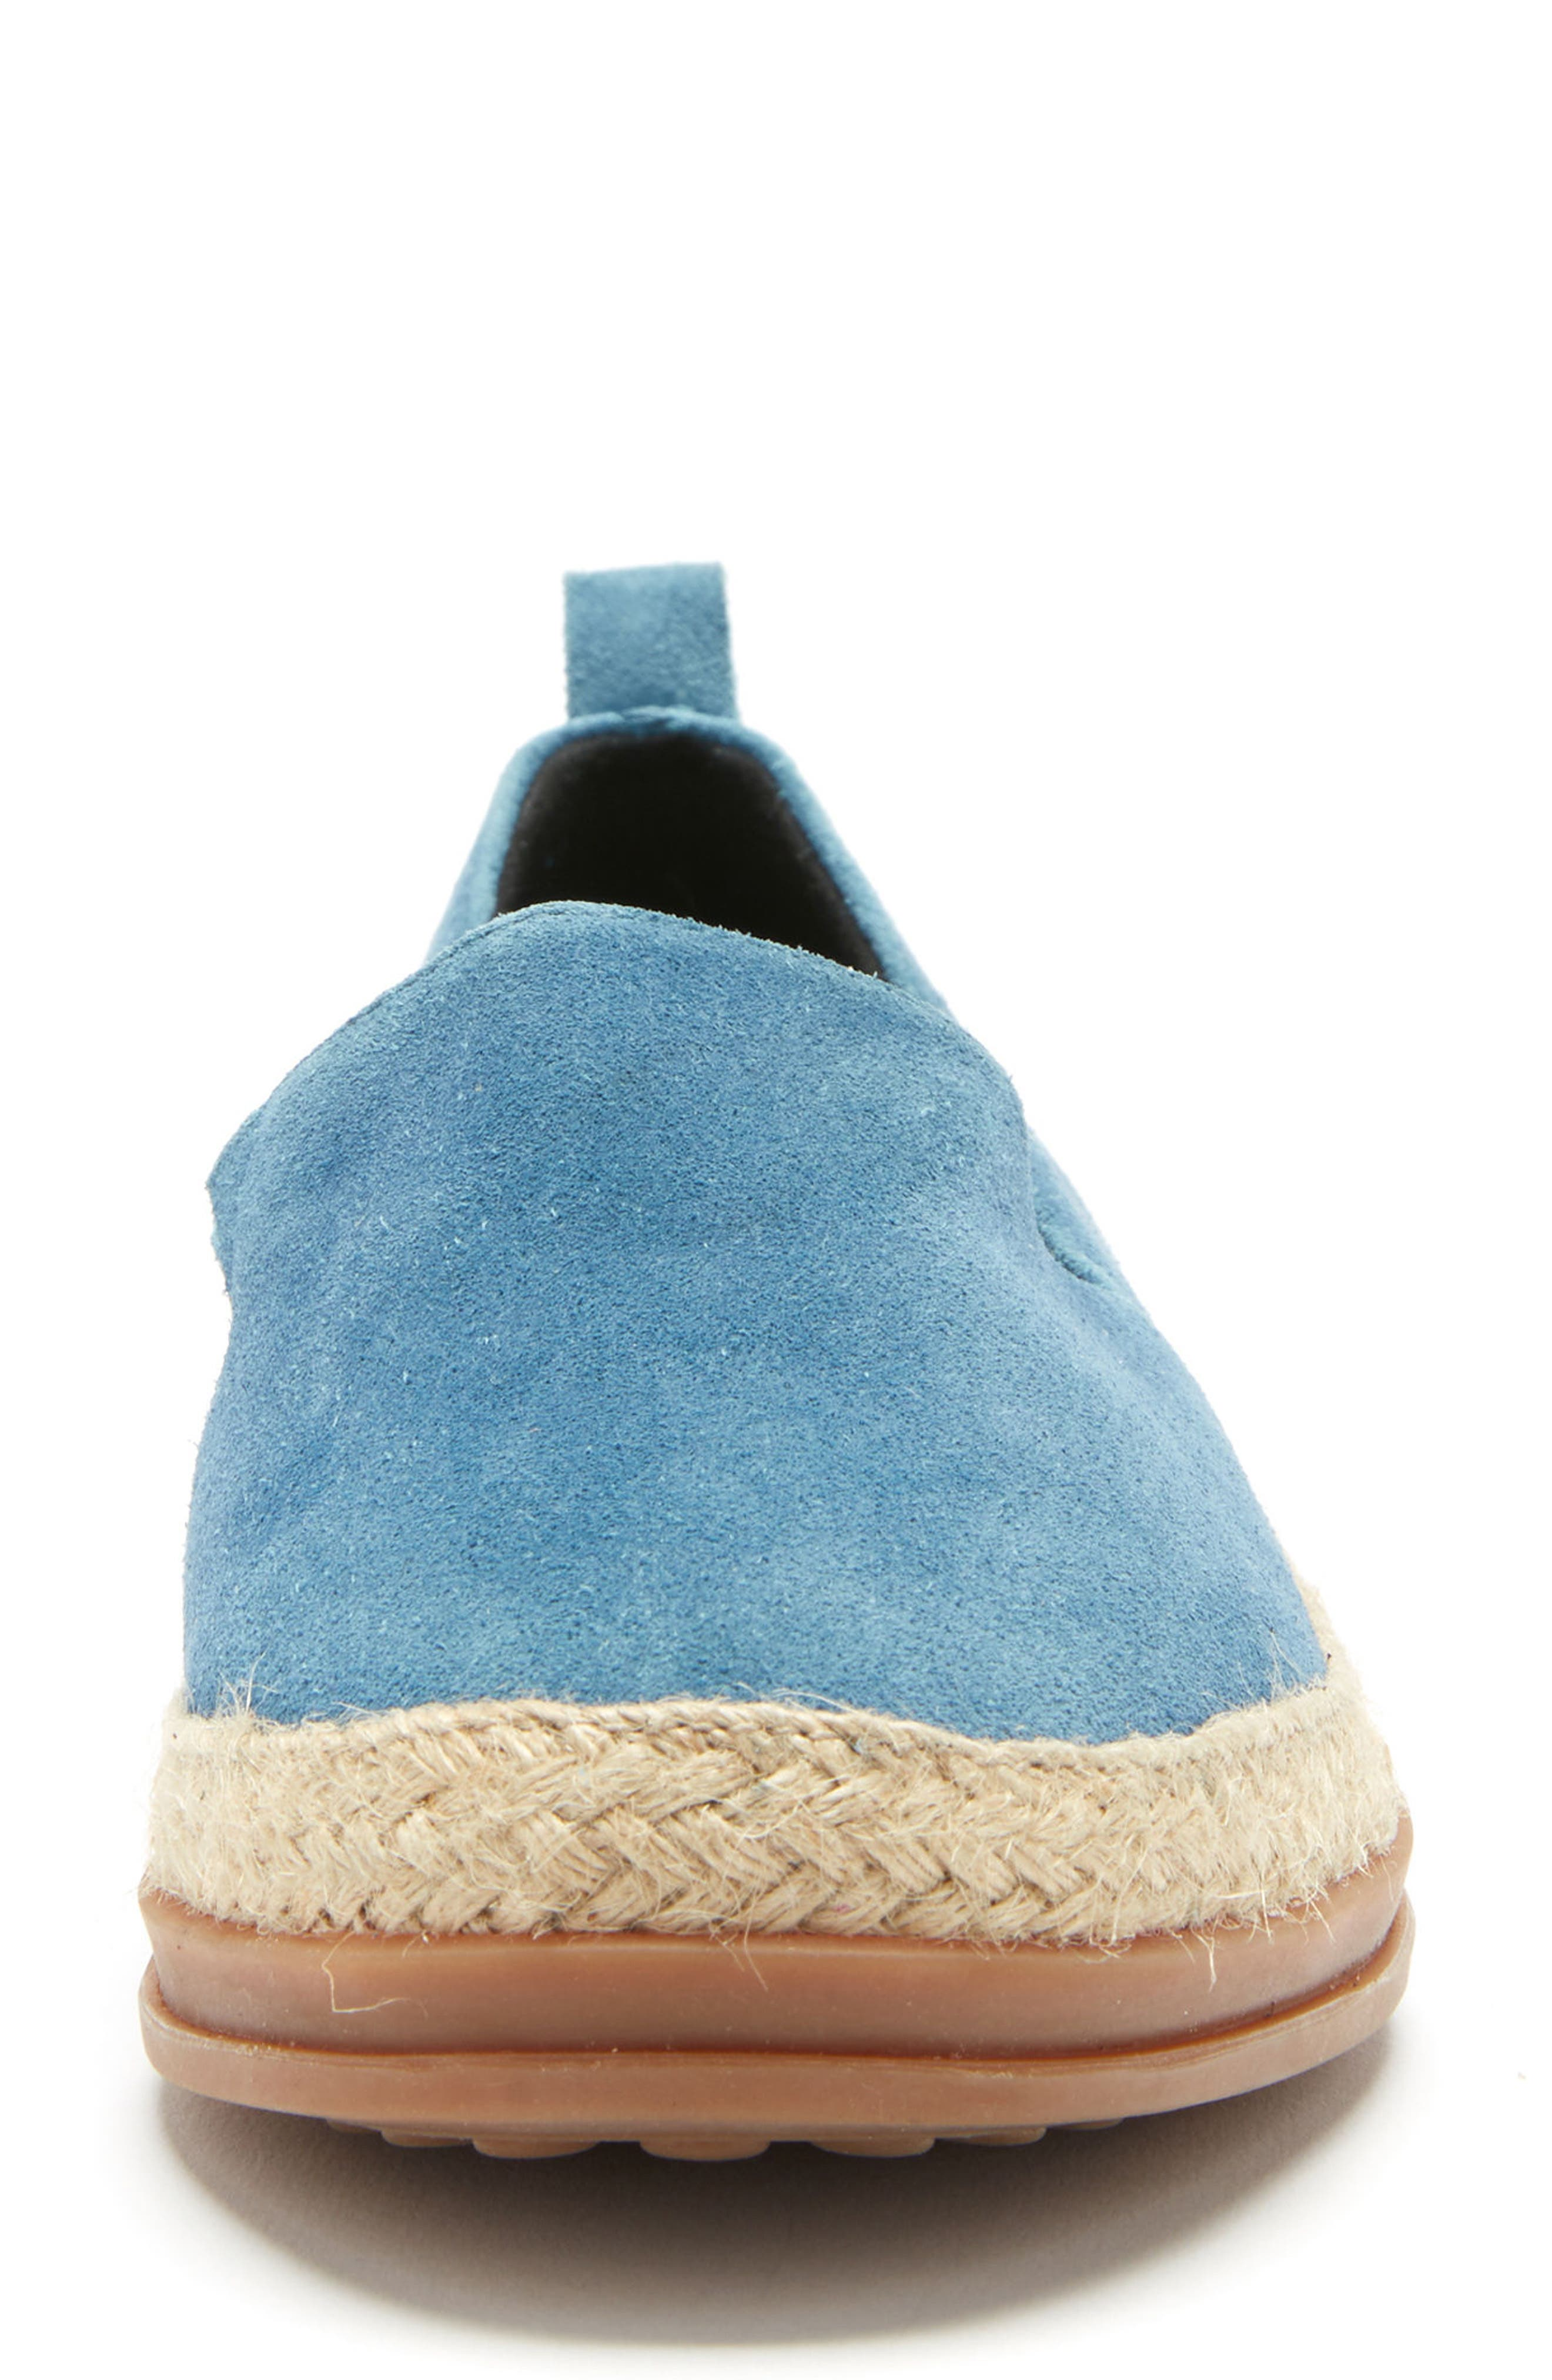 Bailey Espadrille Flat,                             Alternate thumbnail 4, color,                             Blue Suede